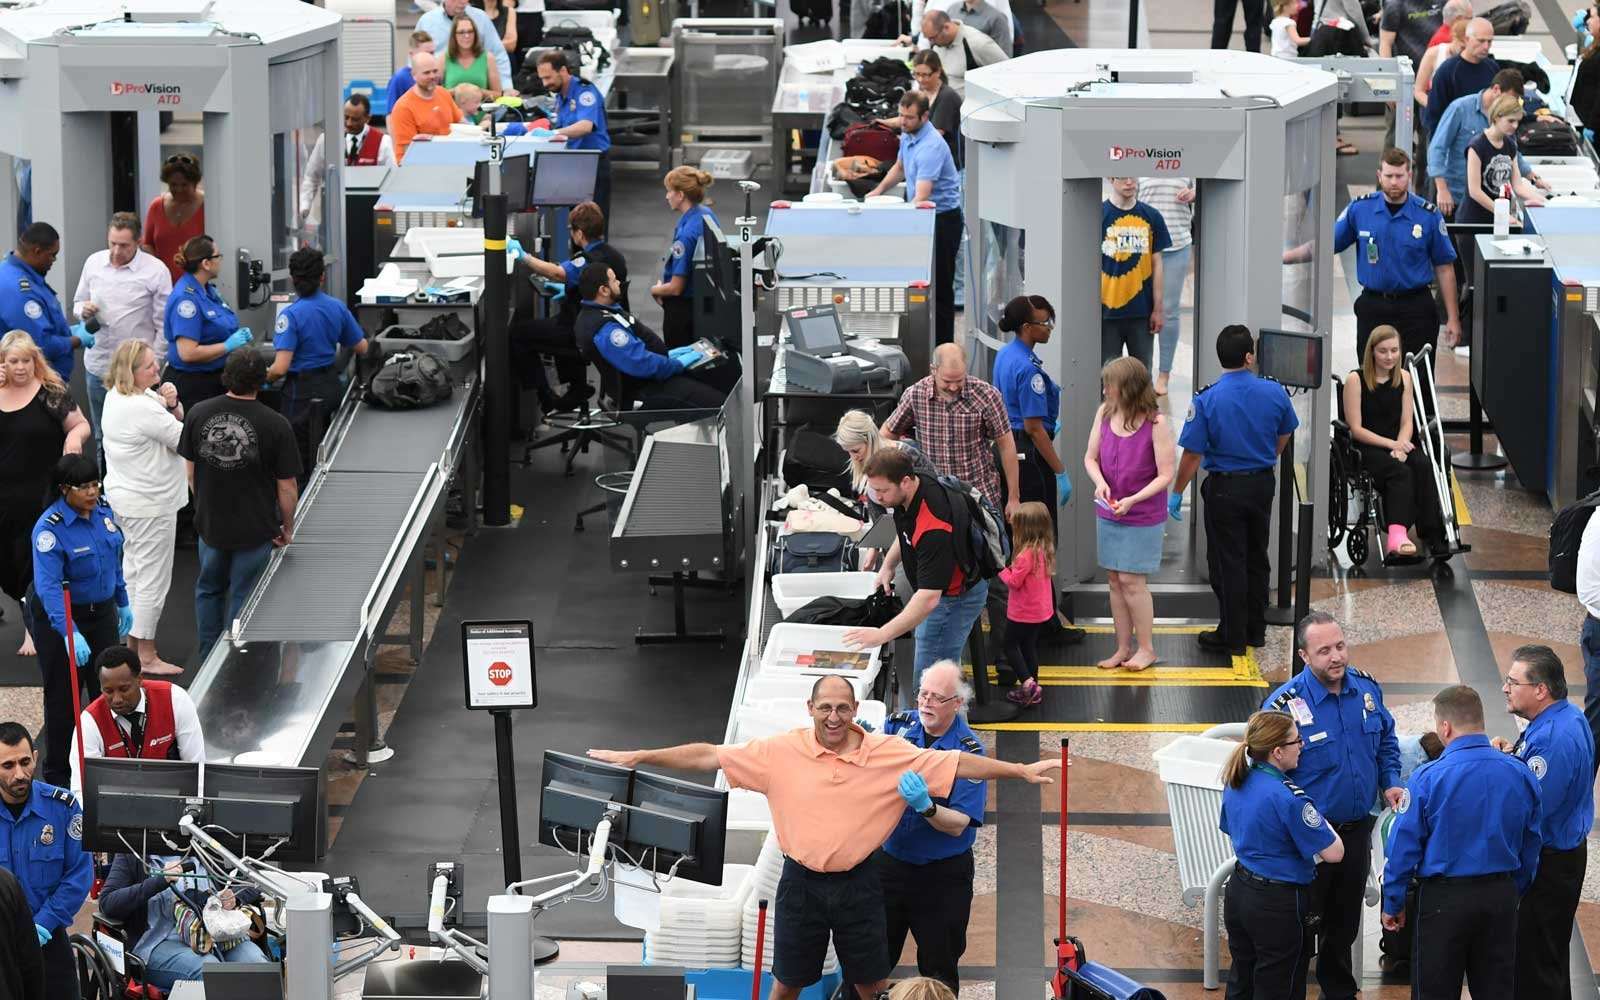 Airport Security Budget May Be Cut